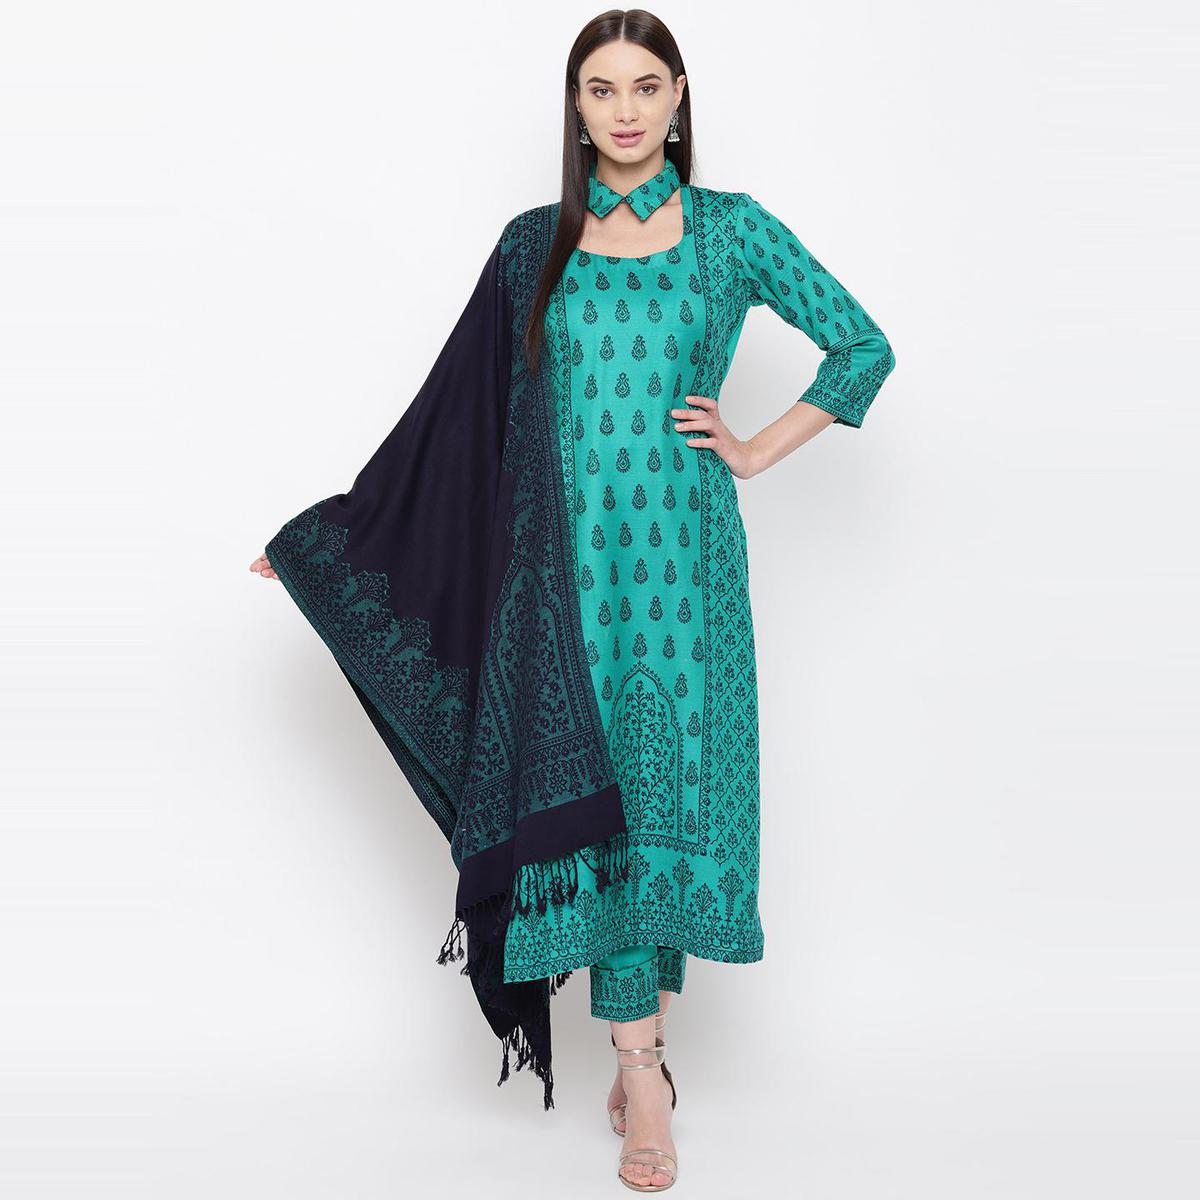 HK Colors Of Fashion - Green Colored Liva Unstitched Viscose Acrylic Dress Material